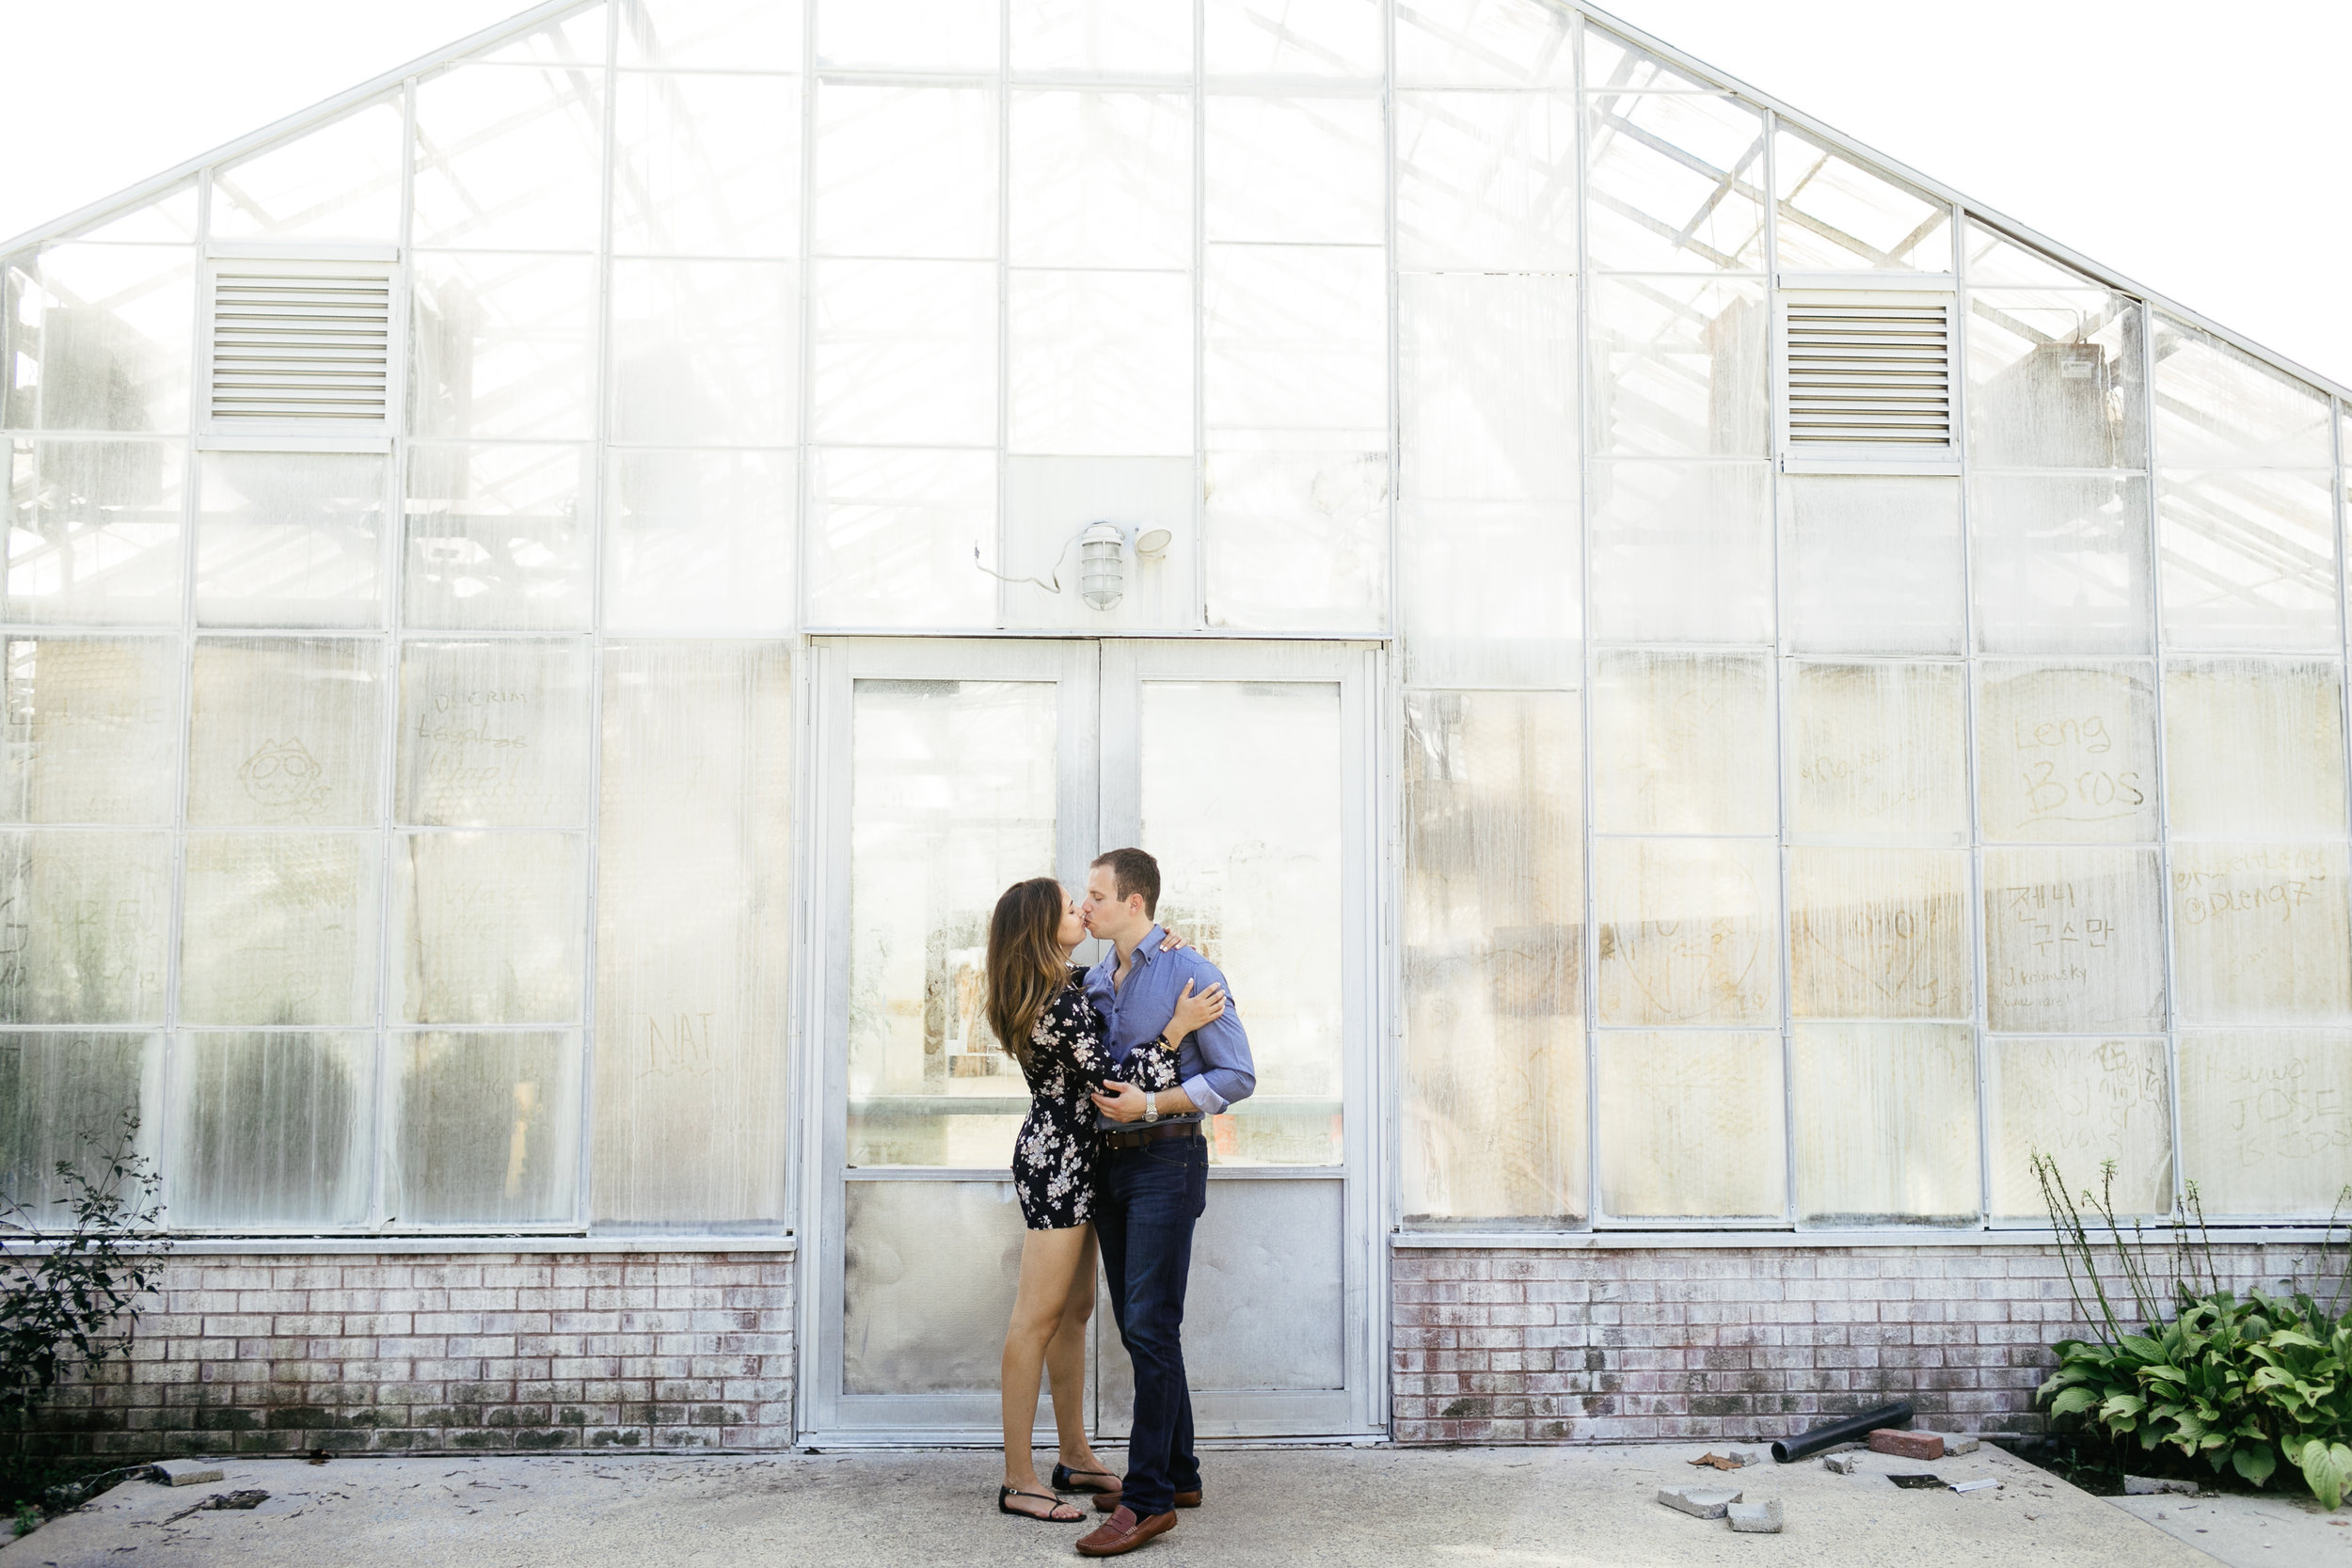 photography-family-natural-candid-engaged-fairmount-philadelphia-wedding-horticultural center-modern-lifestyle-02.JPG